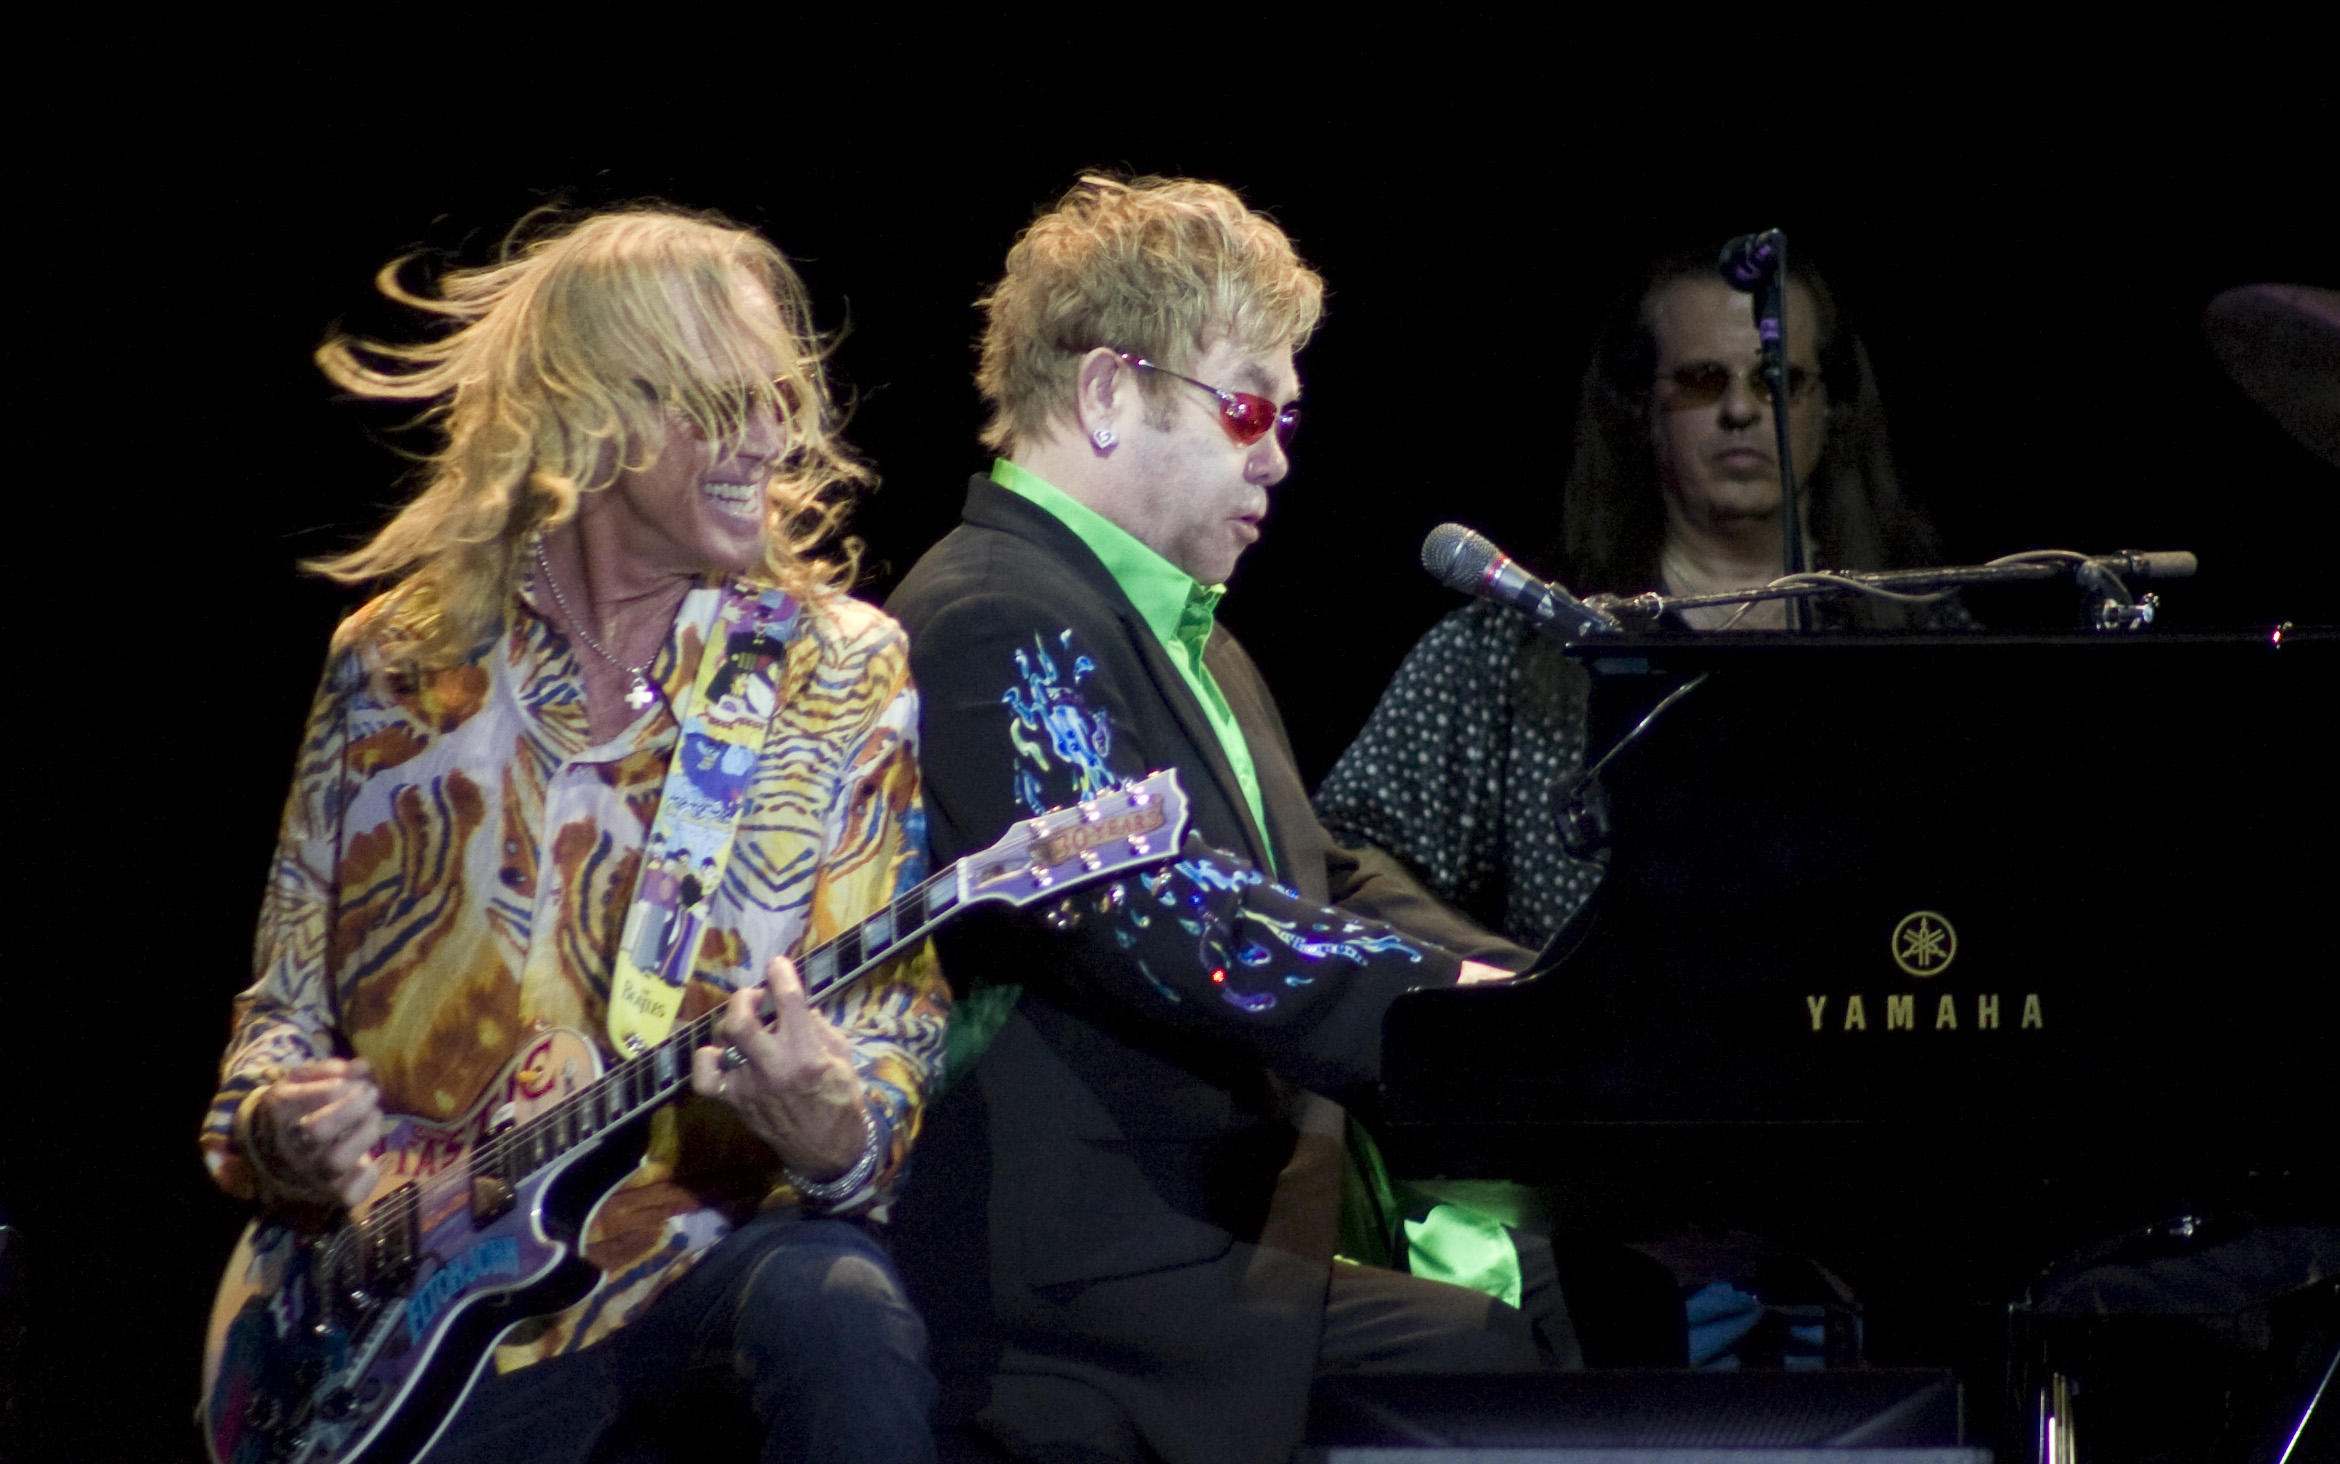 Britain's musician Elton John, center, performs during a concert at the Mayan ruins of Chichen Itza, Mexico on Saturday. Chichen Itza was named one of...